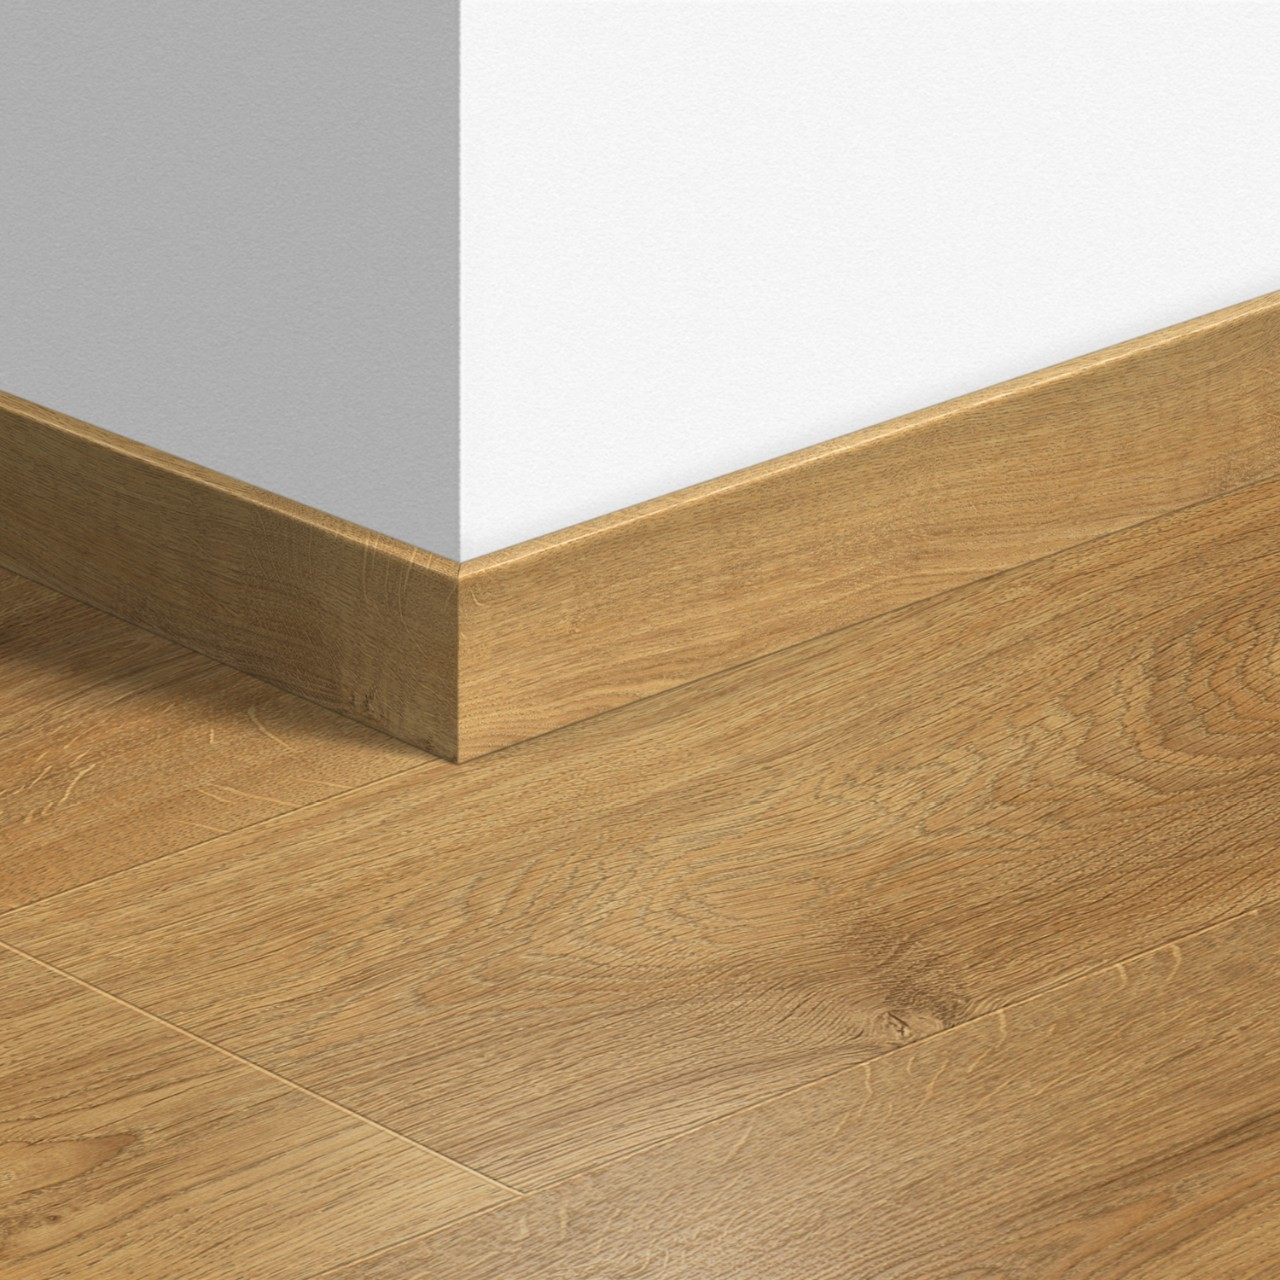 QSSK Laminate Accessories Cambridge oak natural QSSK01662